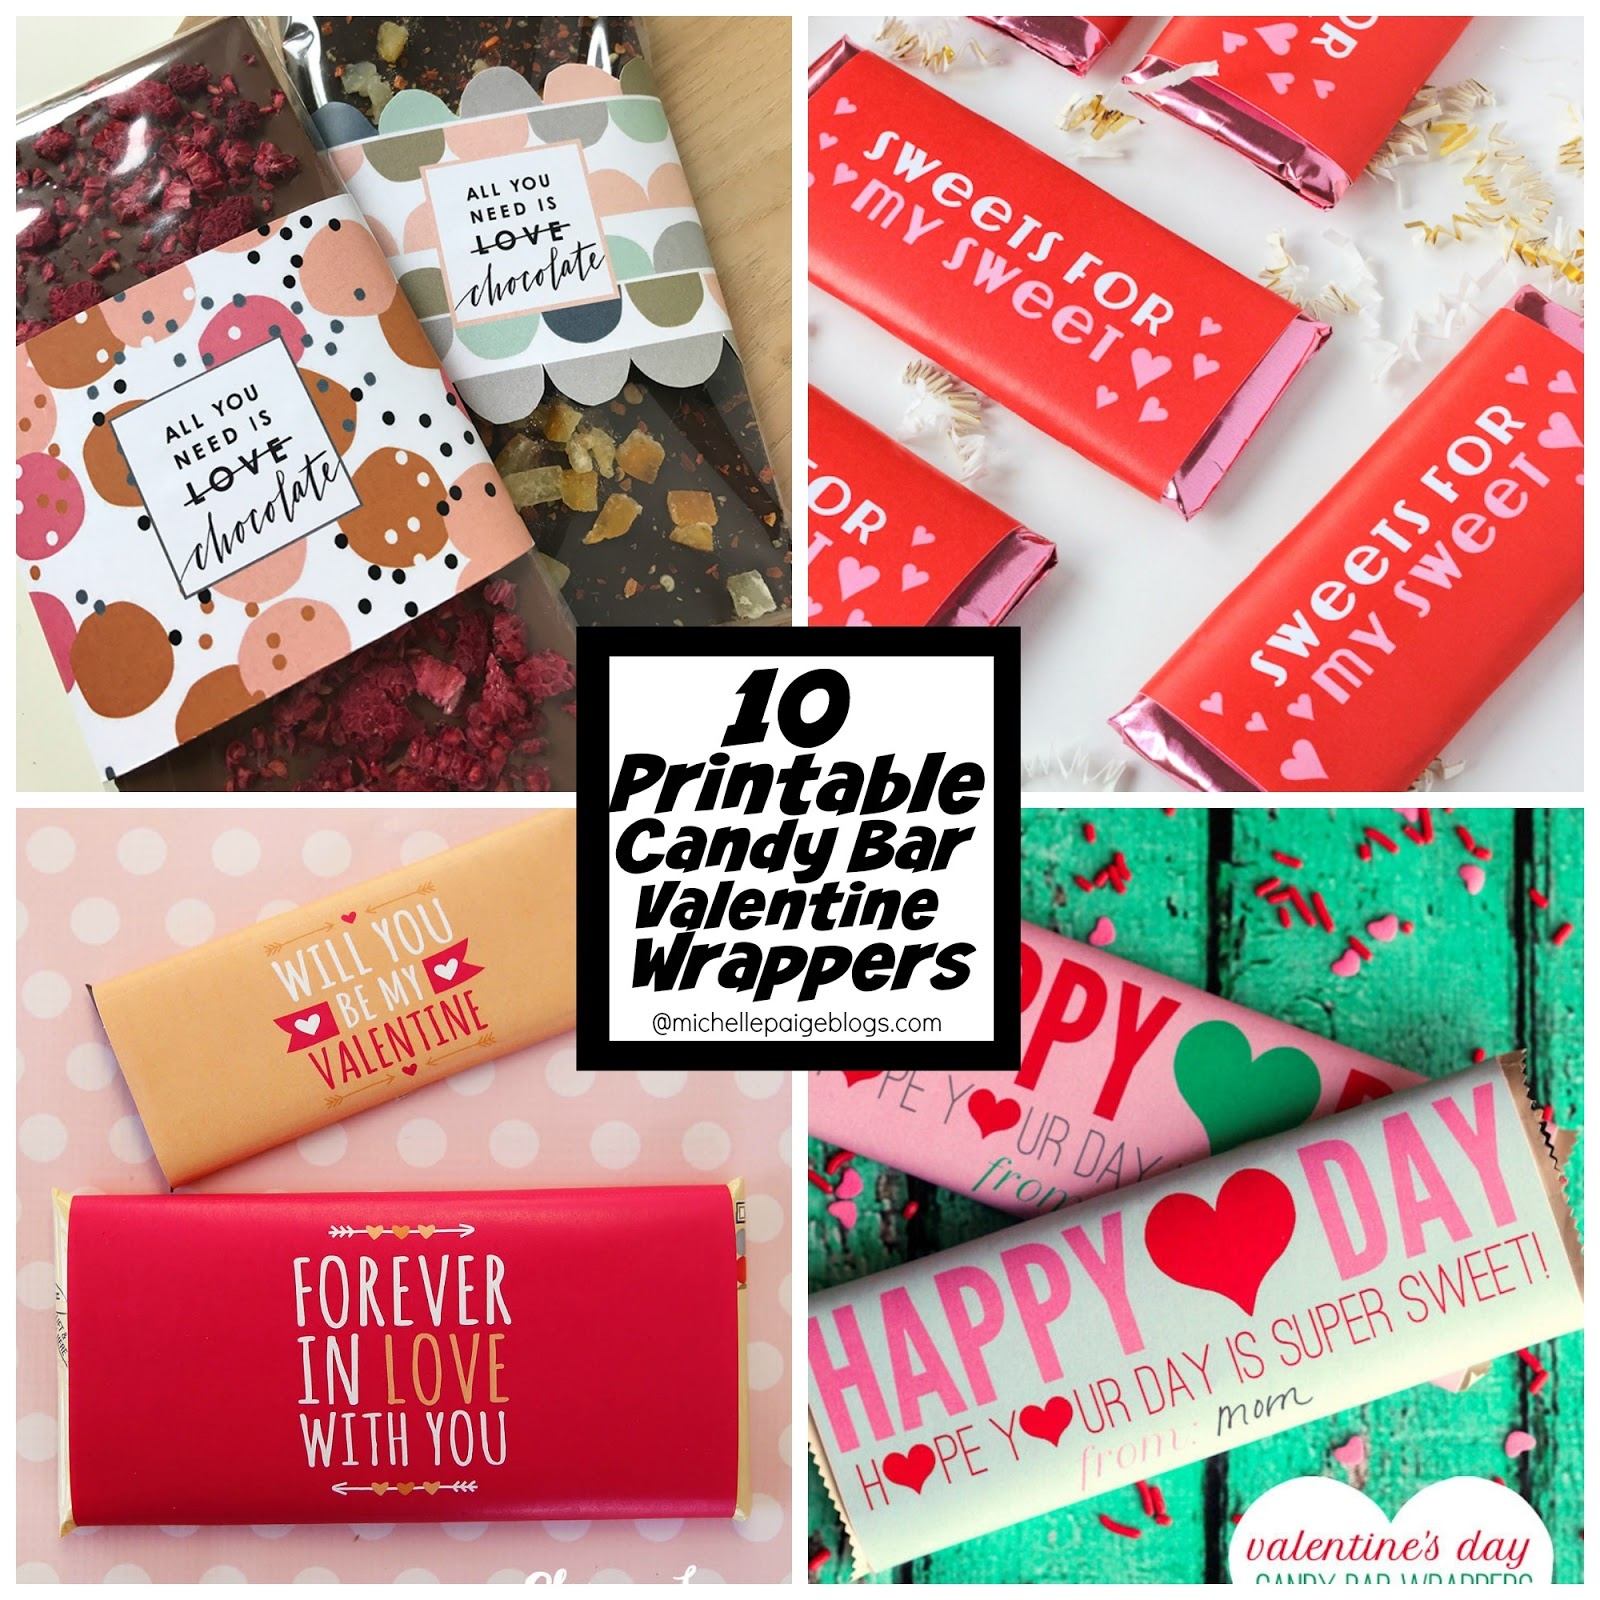 Michelle Paige Blogs: 10 Free Printable Candy Bar Wrapper Valentines - Free Printable Candy Bar Wrappers